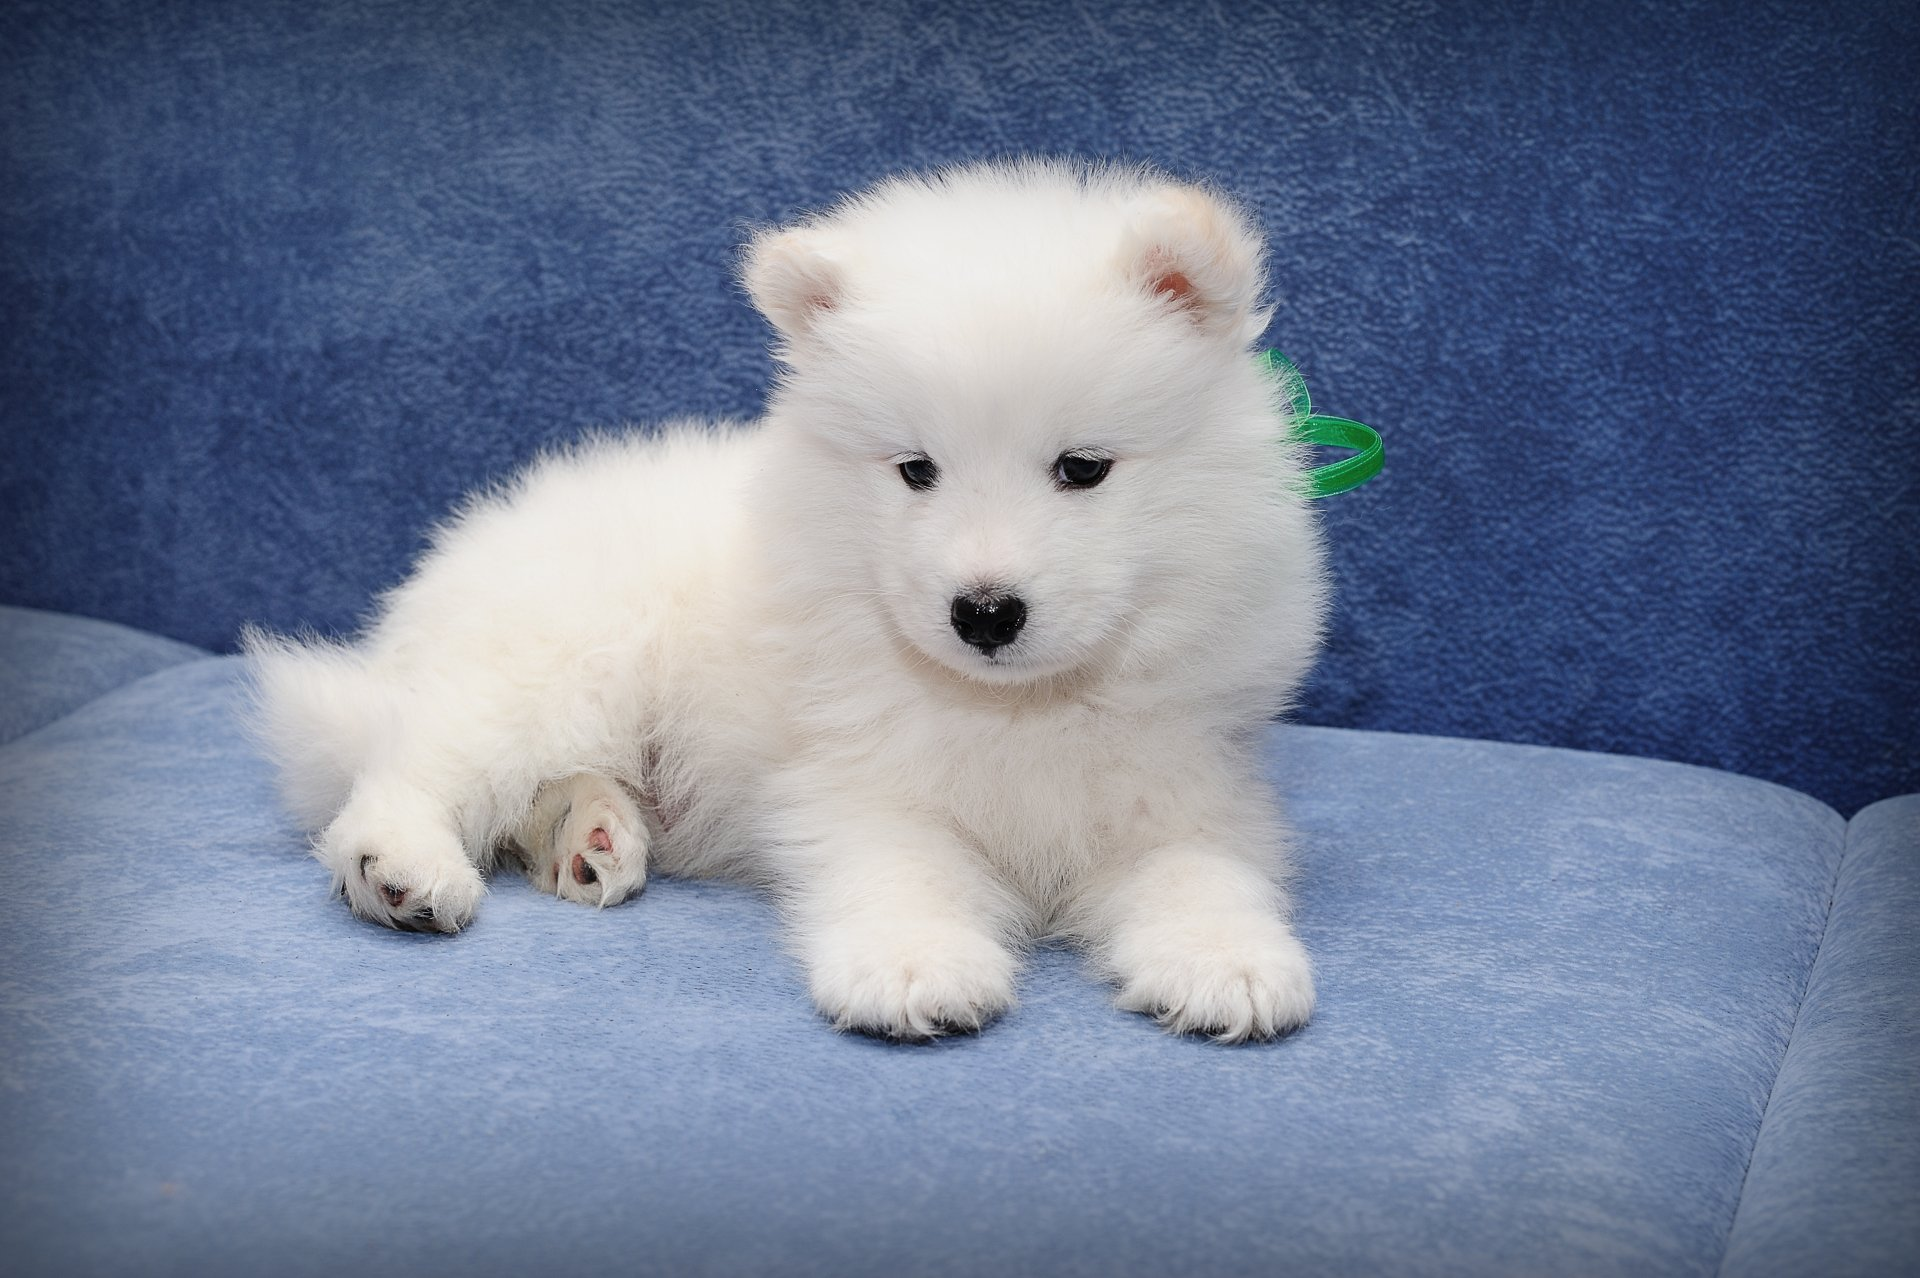 Cute Puppies Wallpapers For Mobile Samoyed 4k Ultra Hd Wallpaper Background Image